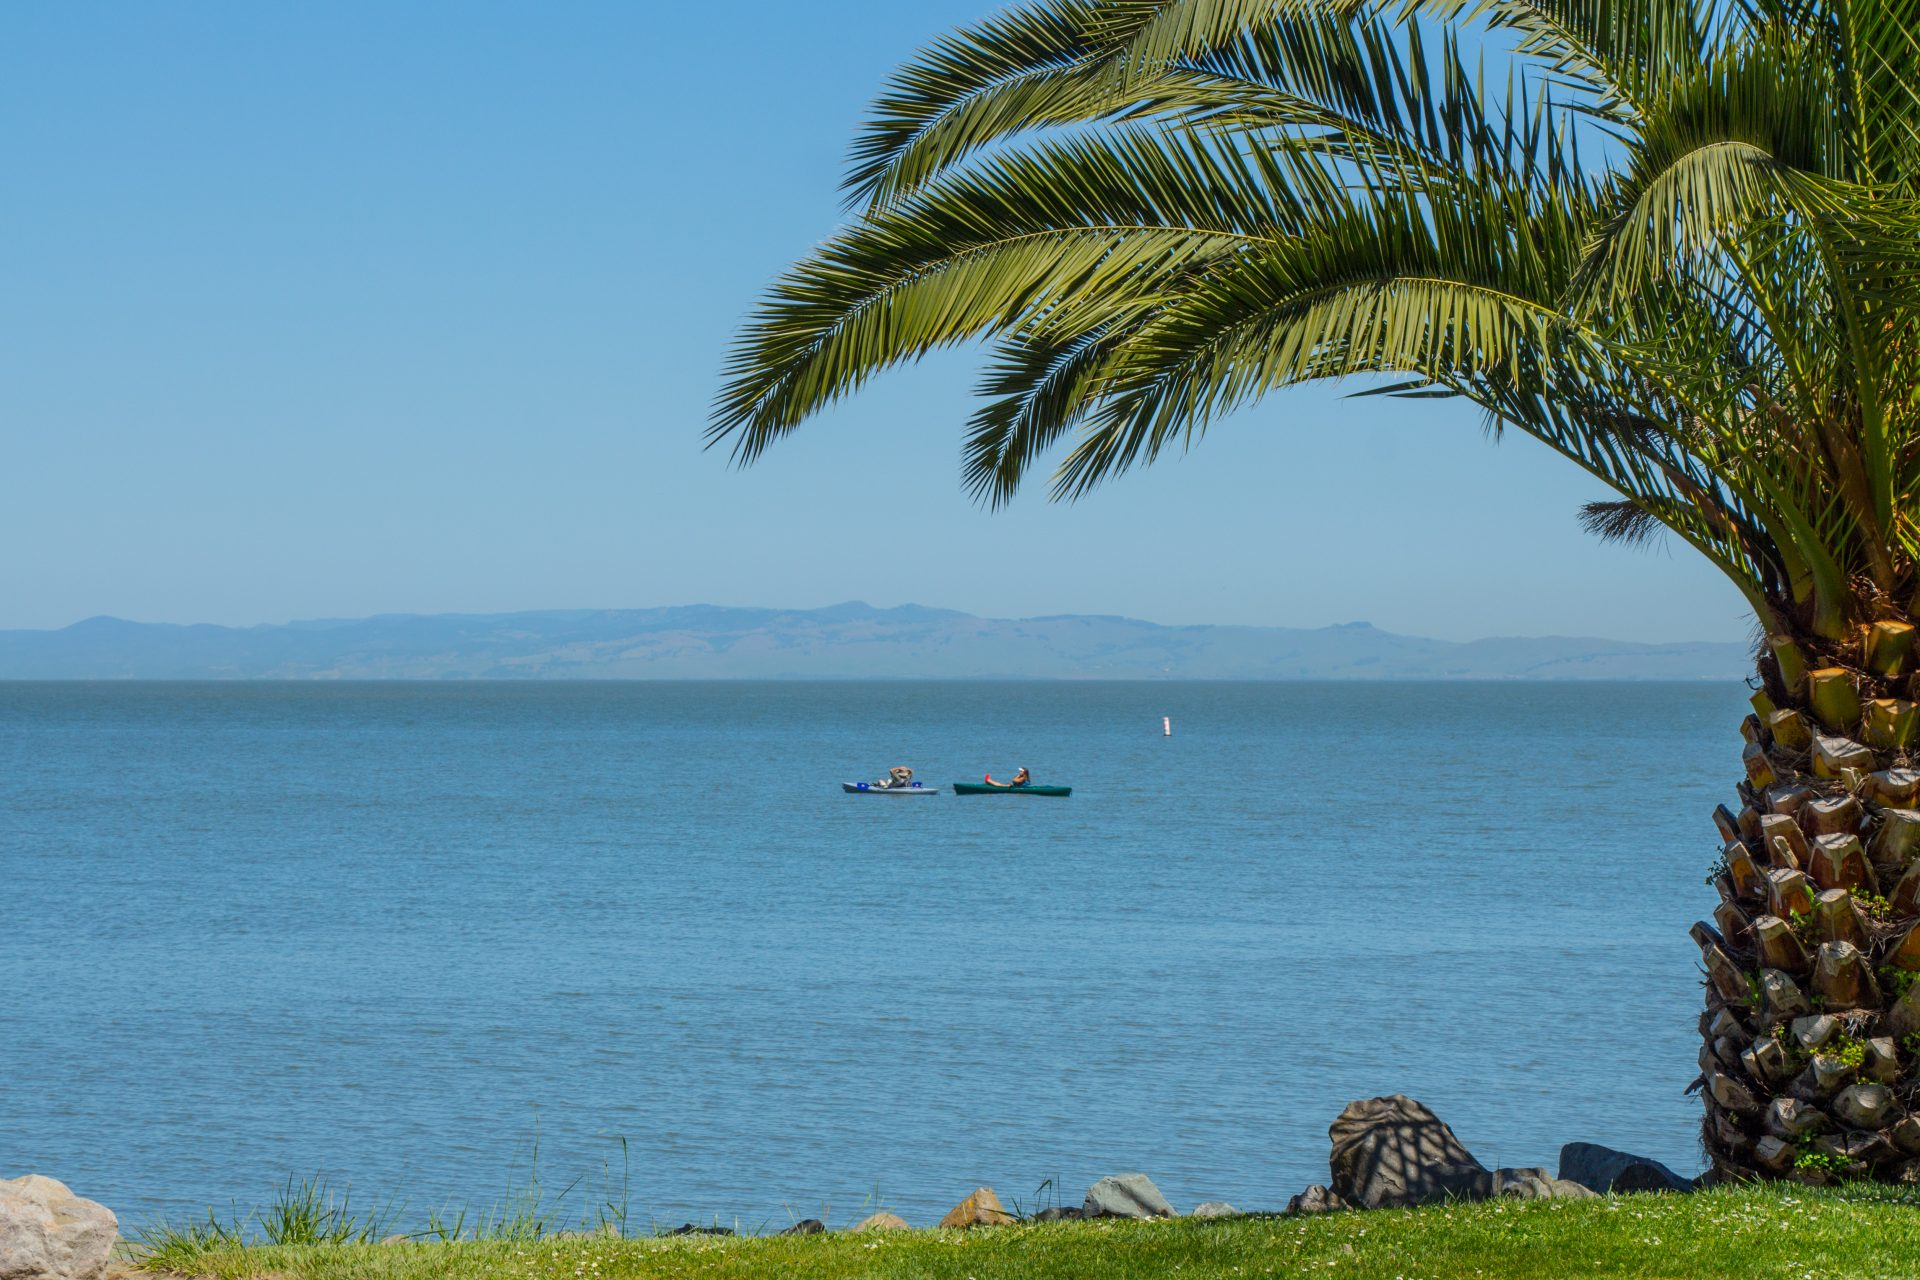 palm tree framing view of the bay, with kayakers in distance